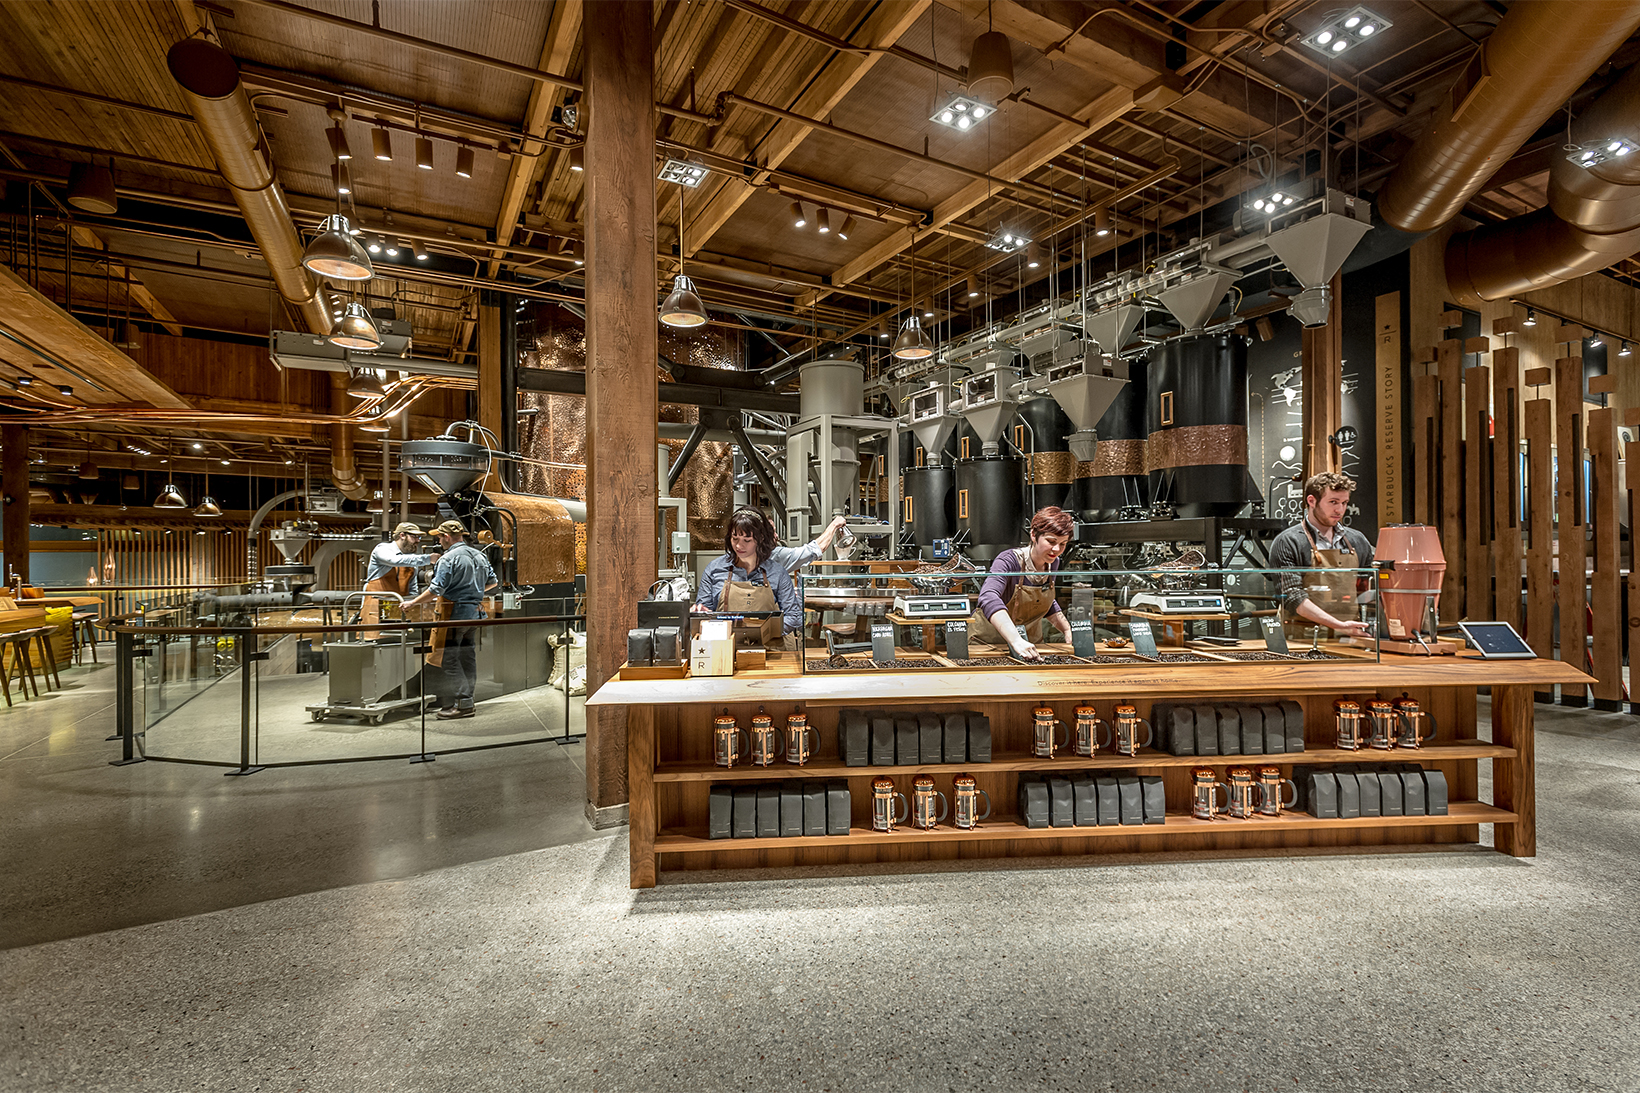 Starbucks Is Bringing Its Reserve Roastery to Tokyo